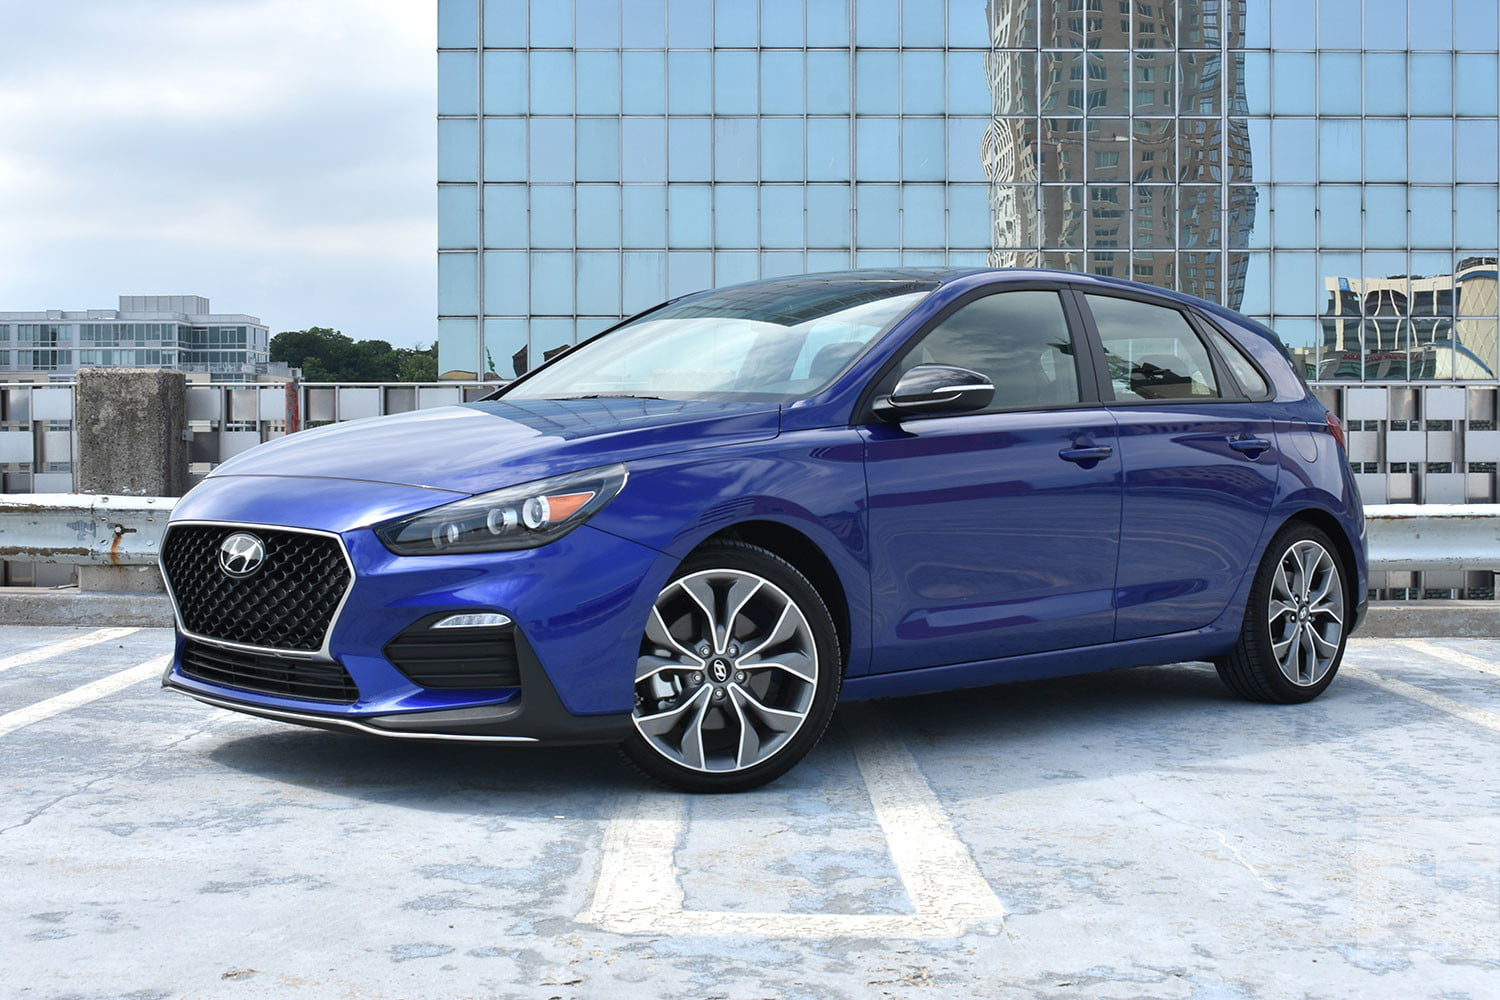 2019 hyundai elantra gt n line review the case for basic hatchbacks digital trends hyundai elantra gt